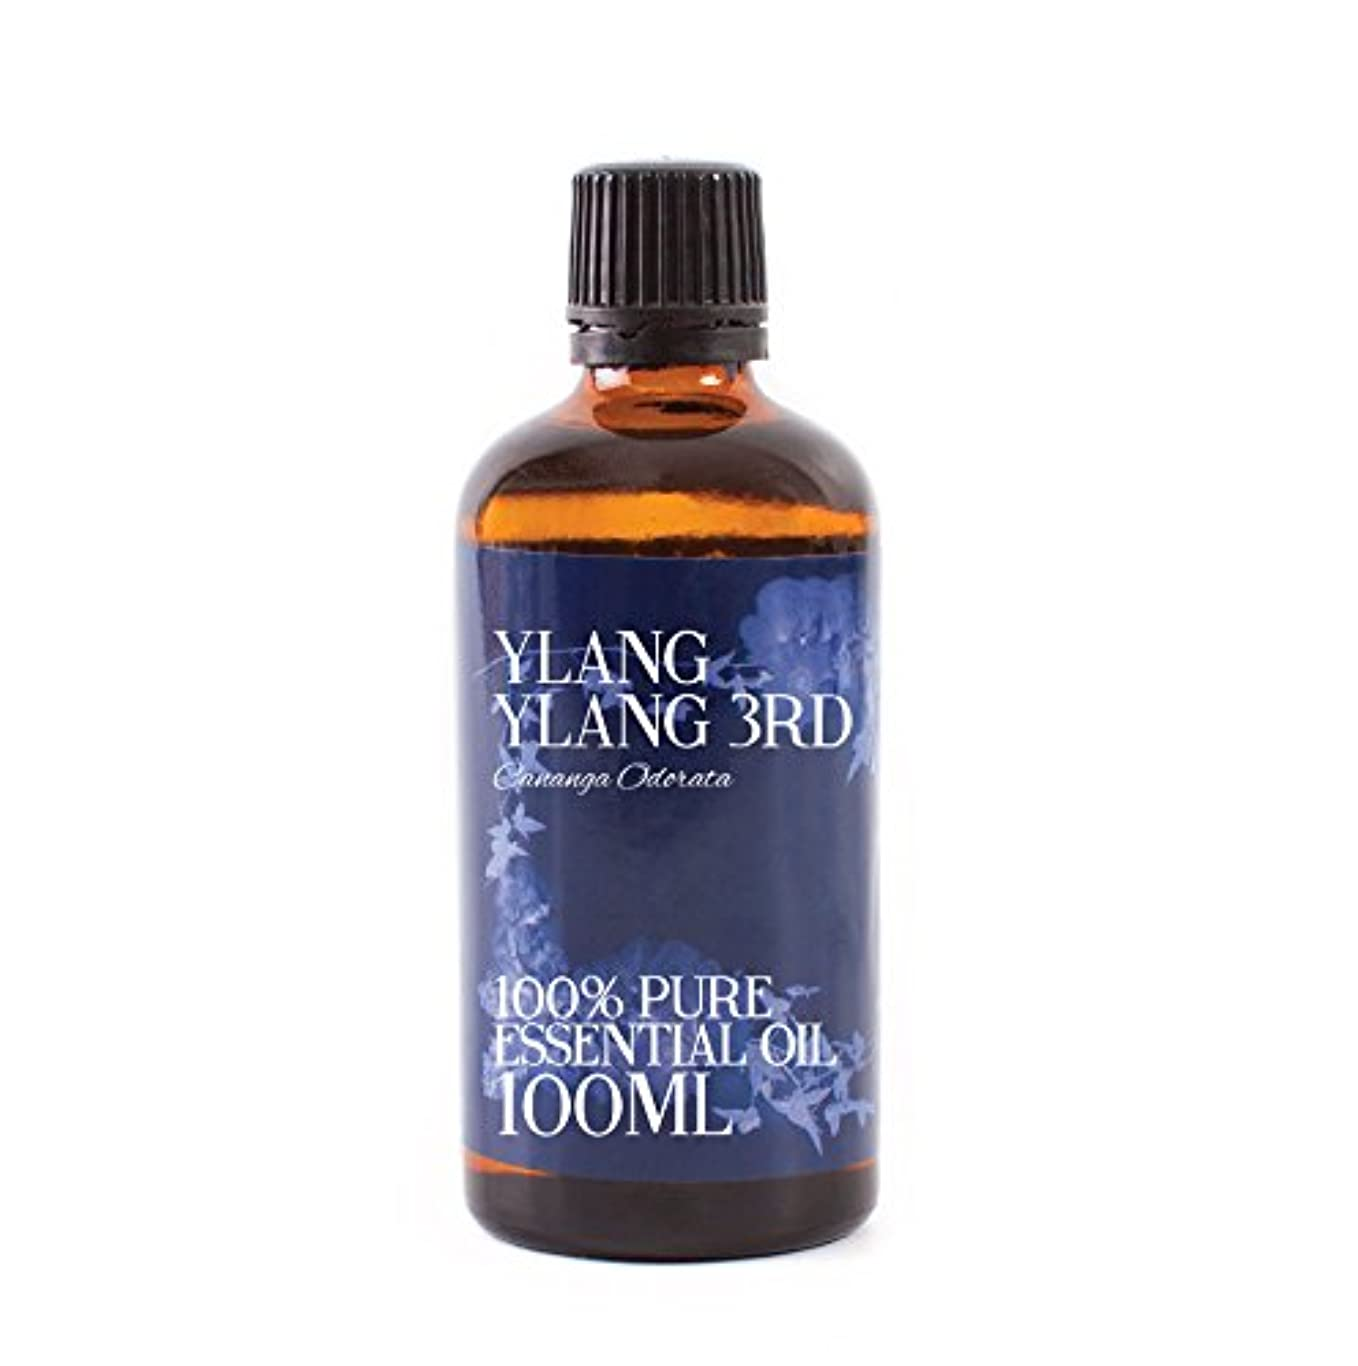 ヘリコプター寮十分Mystic Moments | Ylang Ylang 3rd Essential Oil - 100ml - 100% Pure